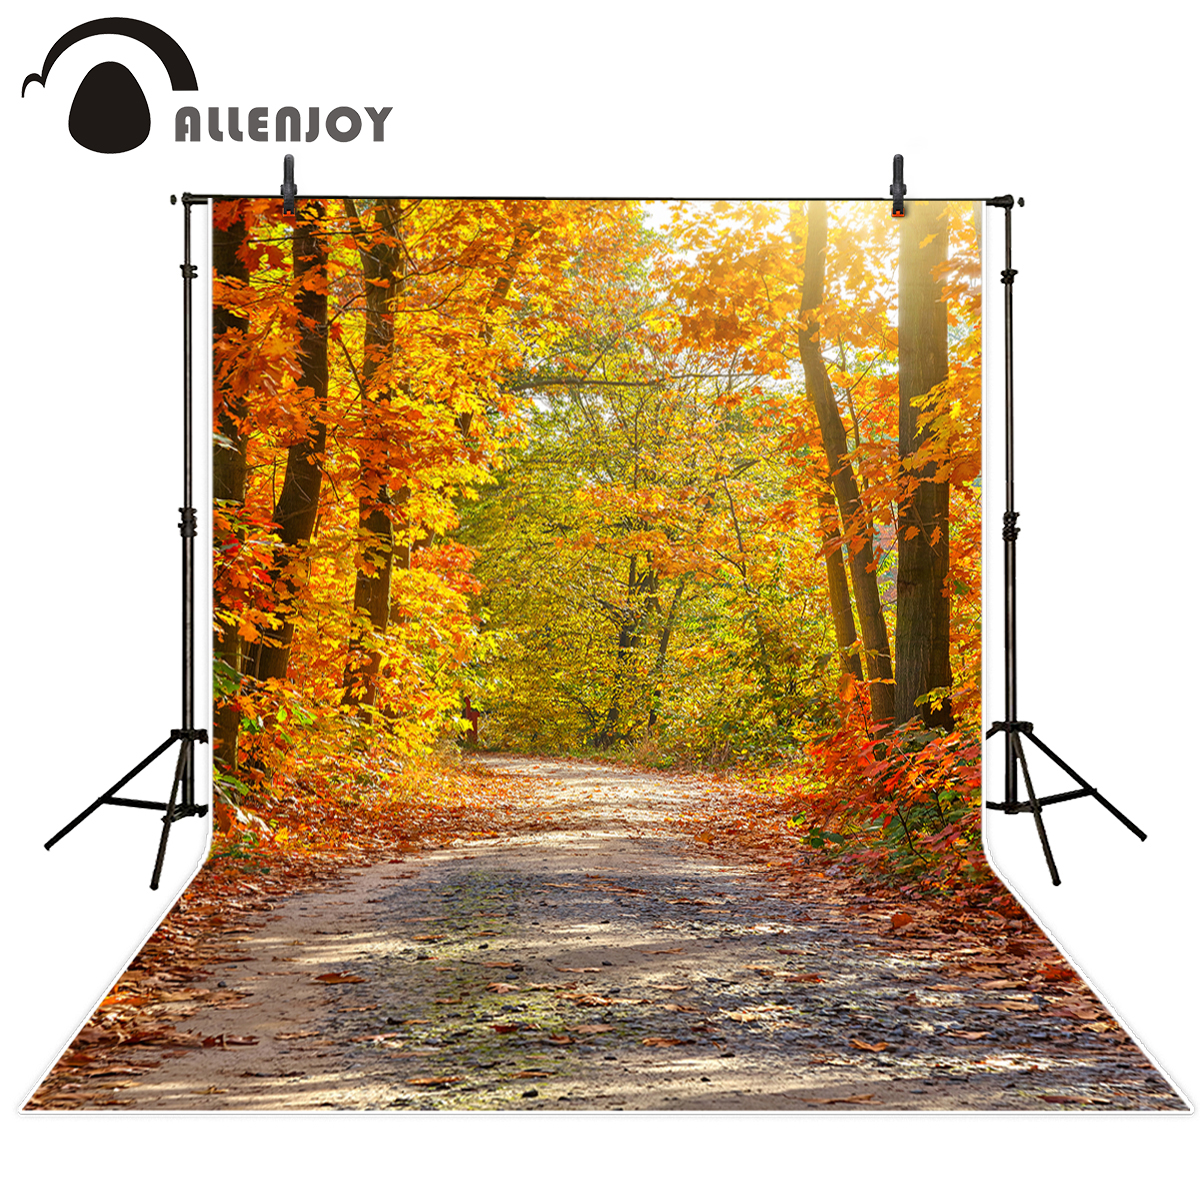 Allenjoy autumn backgrounds for photography studio tree path orange sunshine photobooth backdrop professional printed